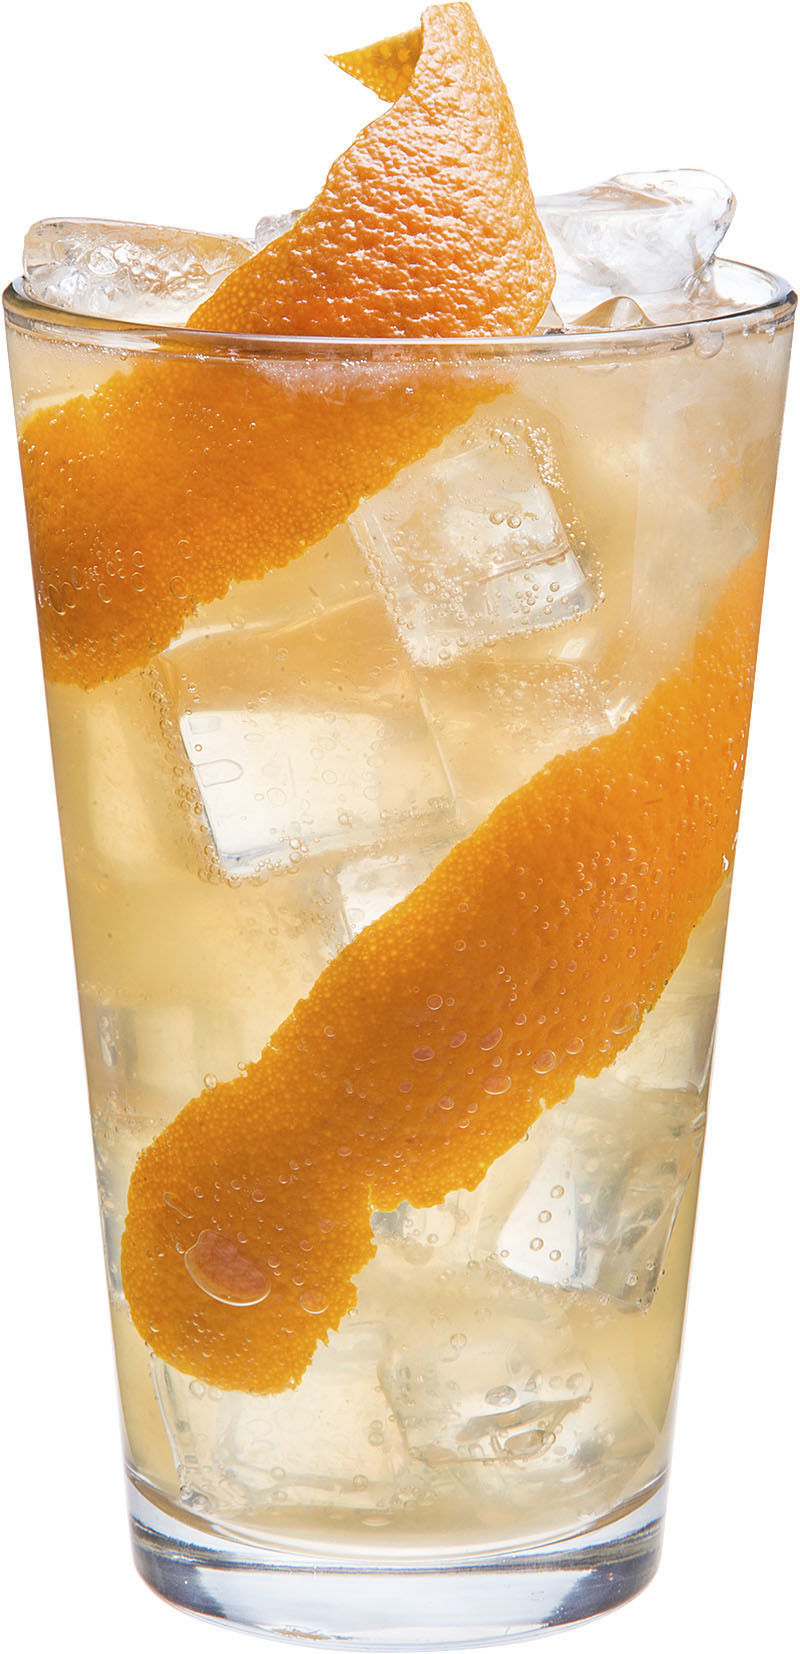 How to Make the Orange Collins